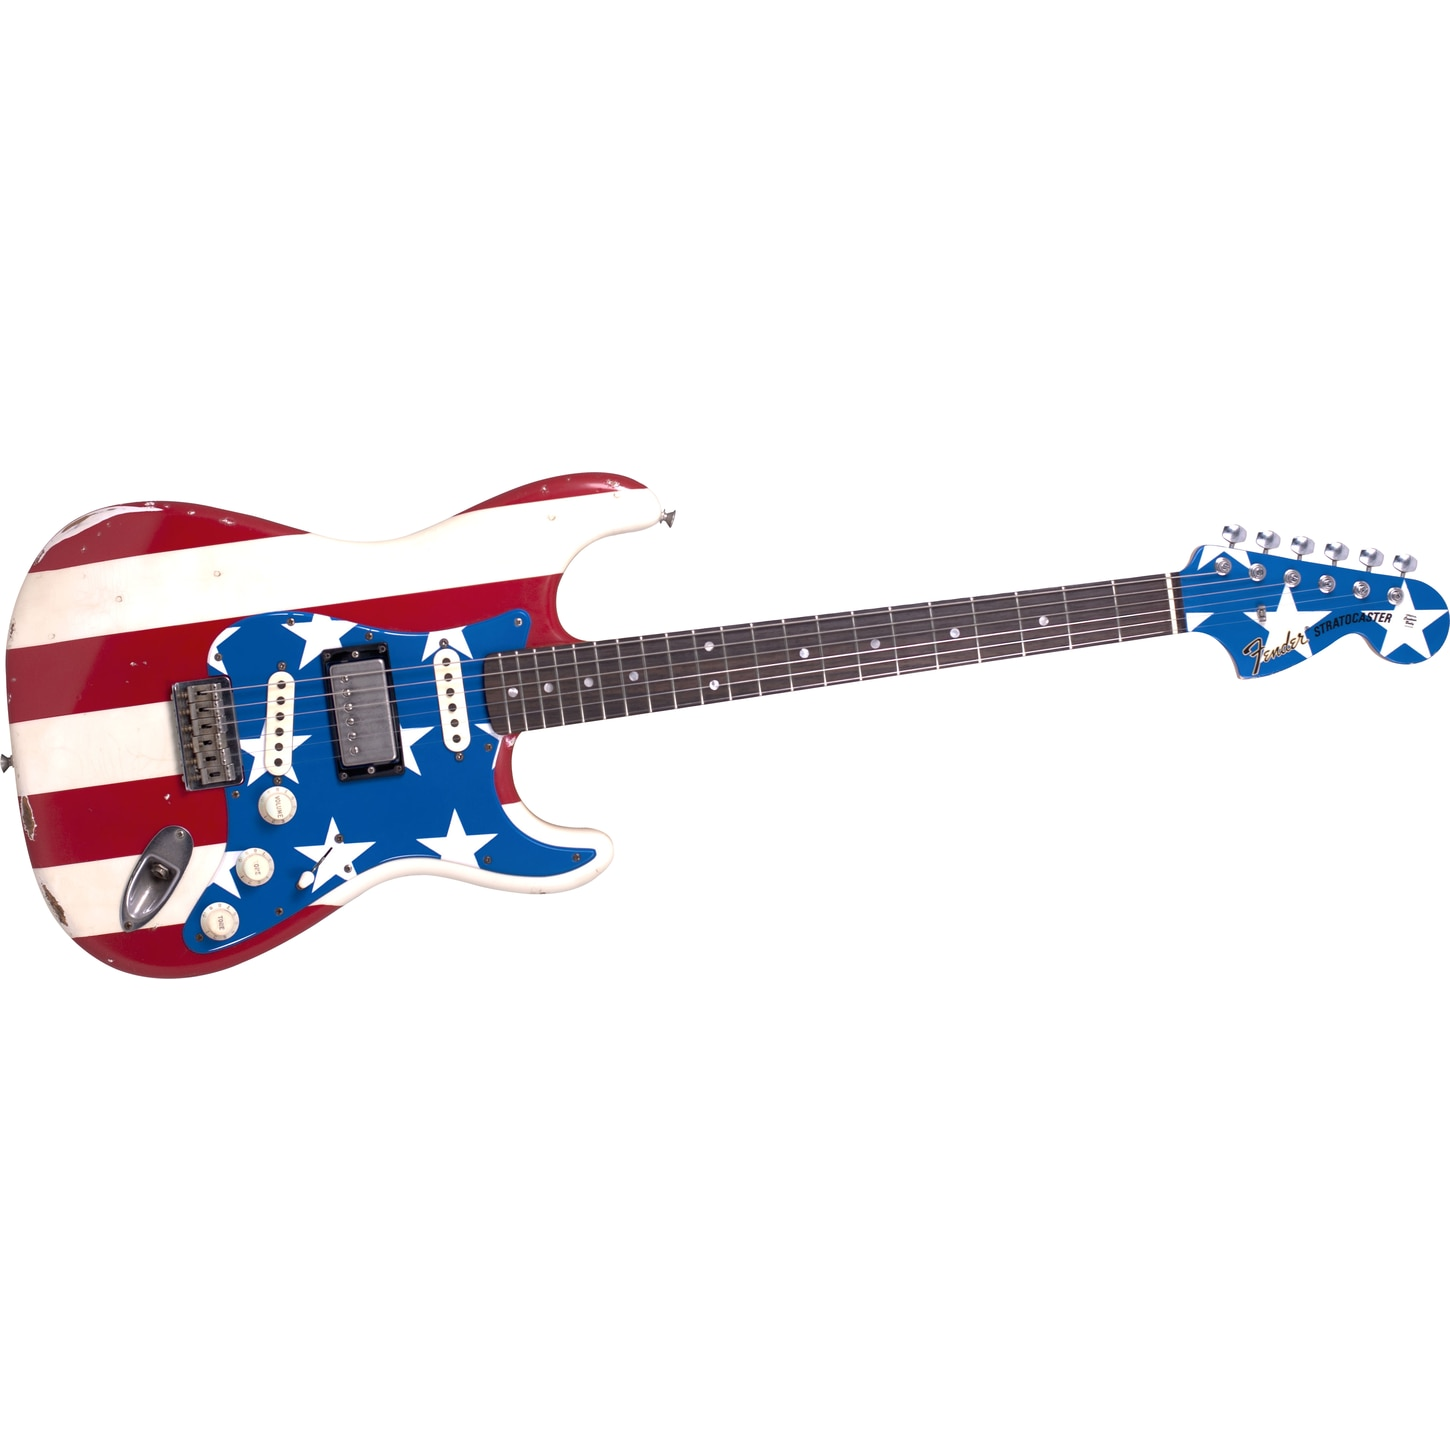 Bbq Menu 06 further Fender Wayne Kramer Signature Flag Stratocaster Electric Guitar together with Hair bows clipart in addition Shutters moreover Whiting Davis Cameo Cl er Bracelet. on small home accessories